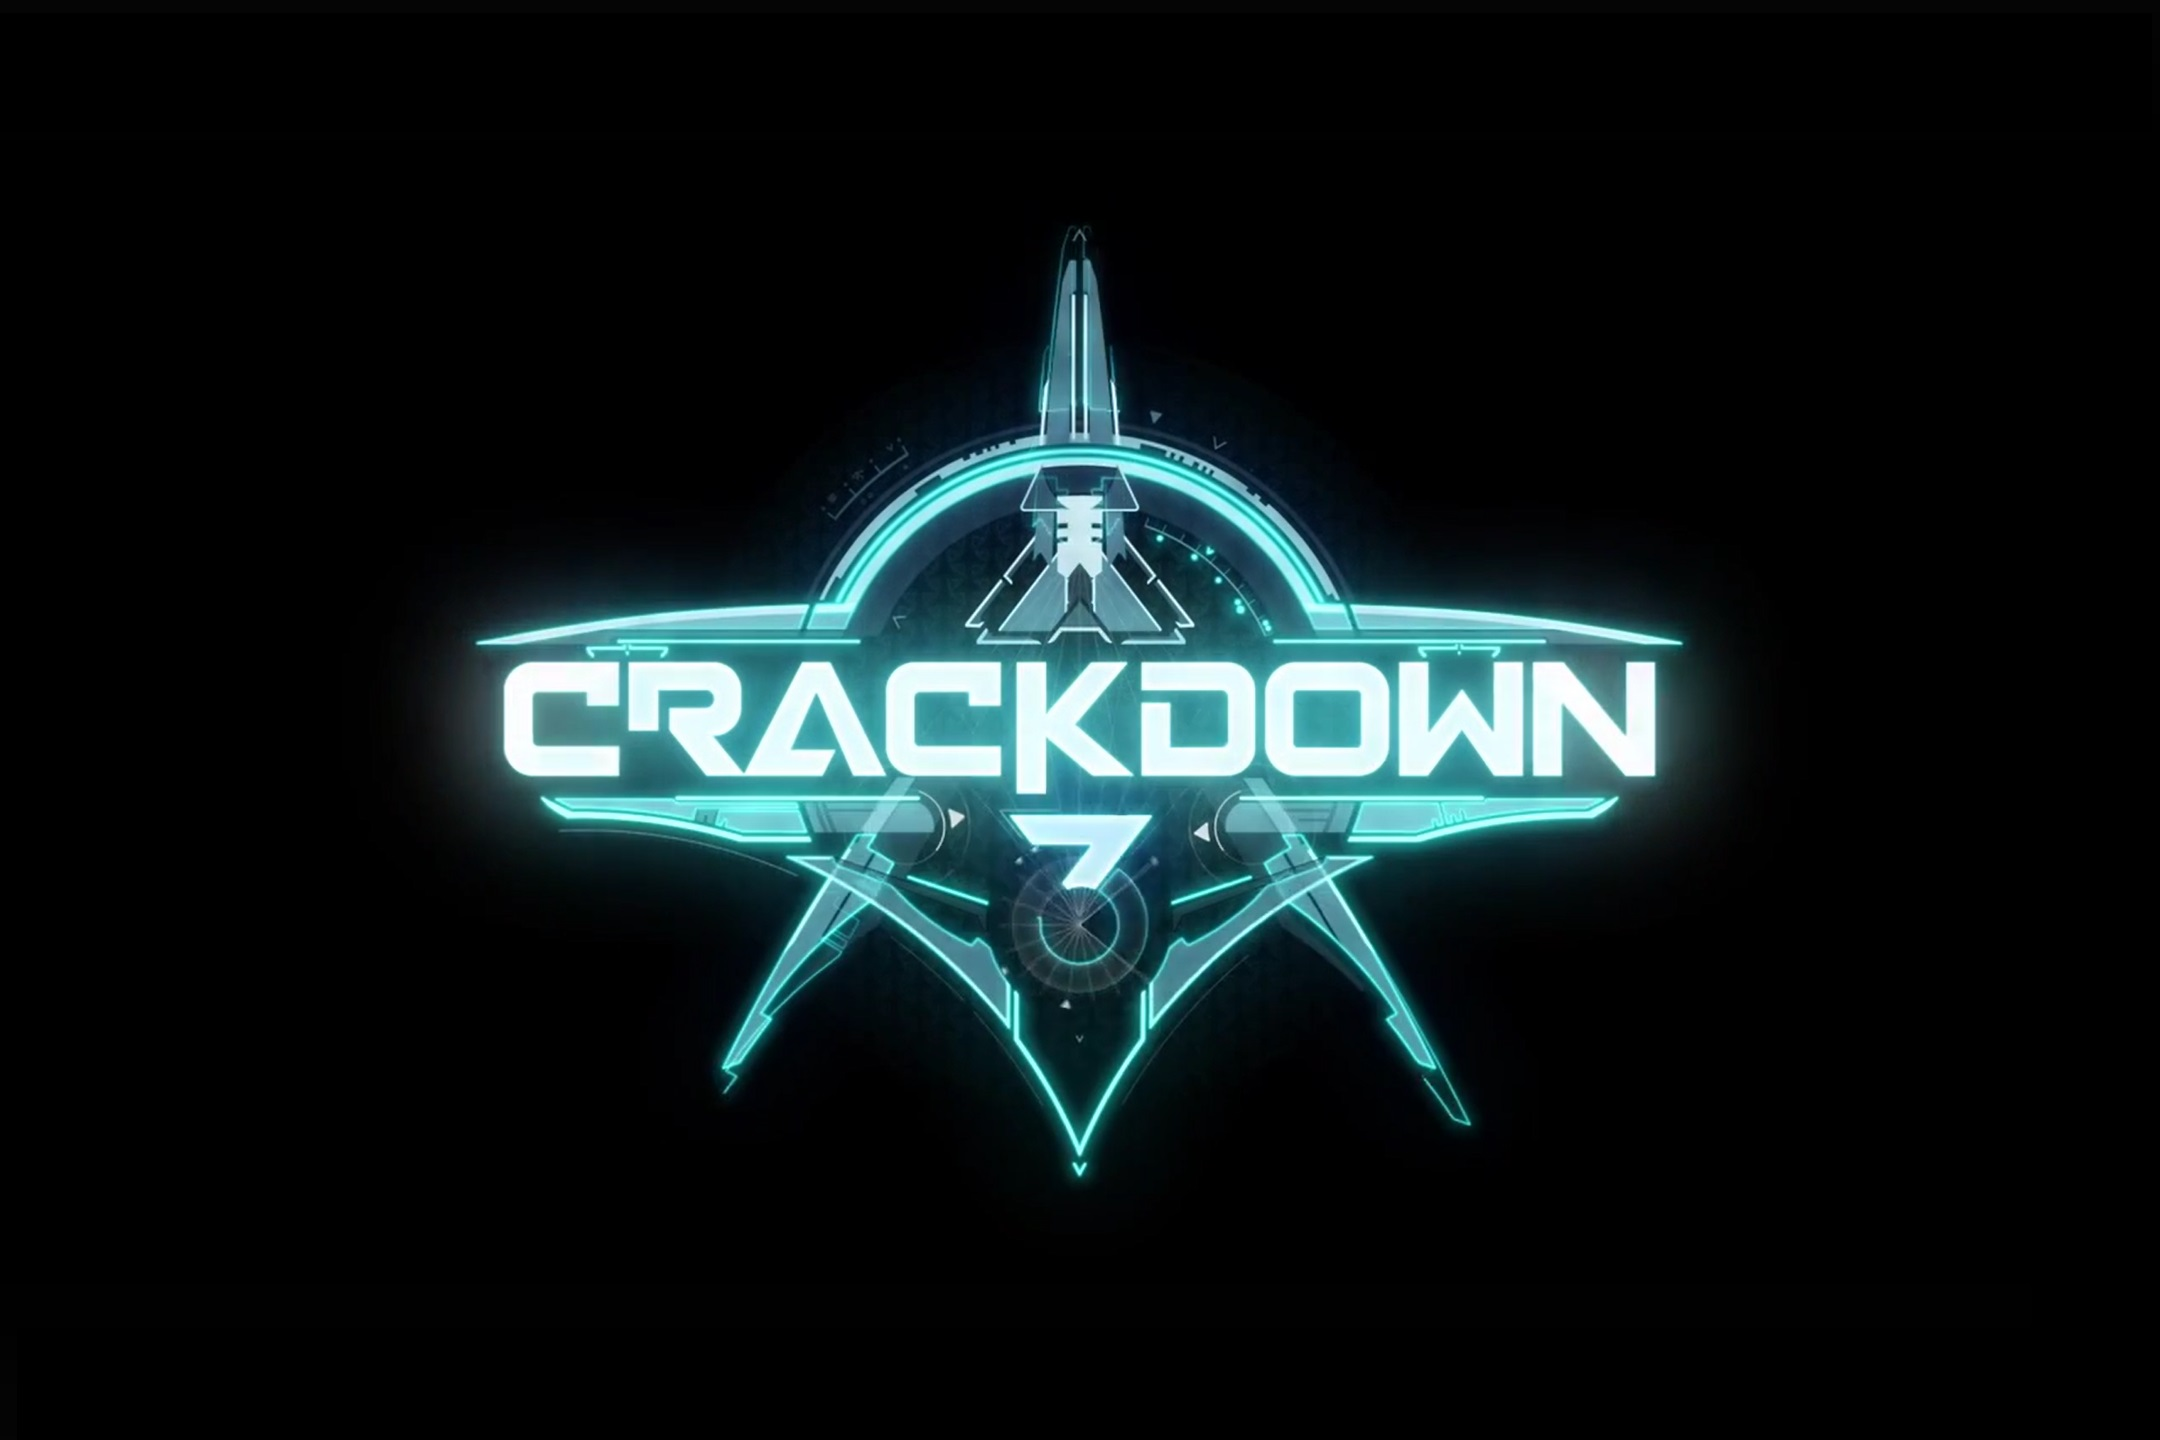 Crackdown 3 Shows Off Power of Azure, Only Limited by ISP